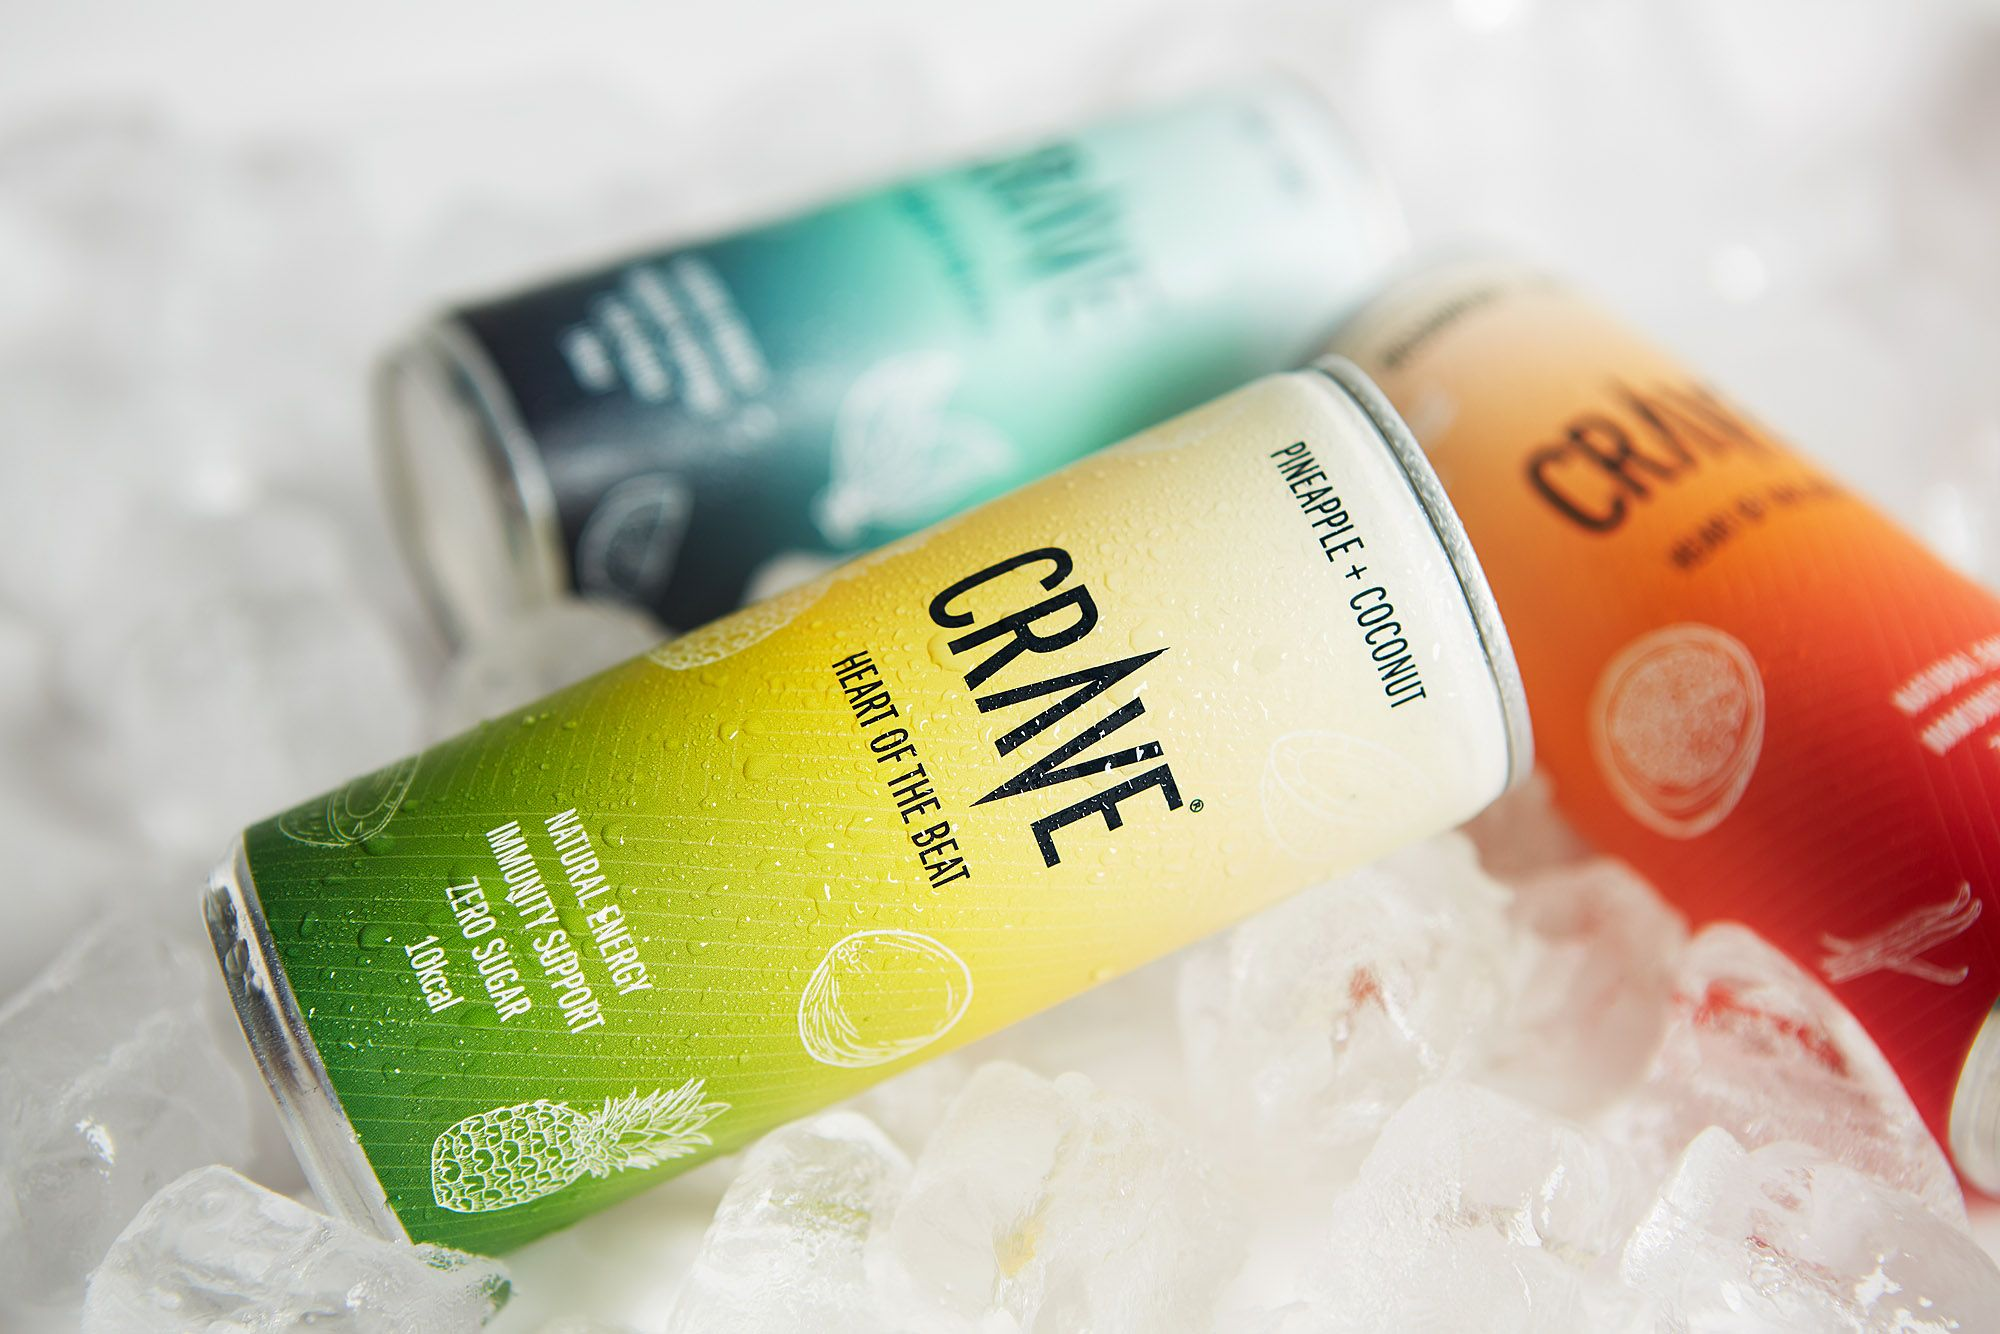 #GoSoloStories: Crave Drinks